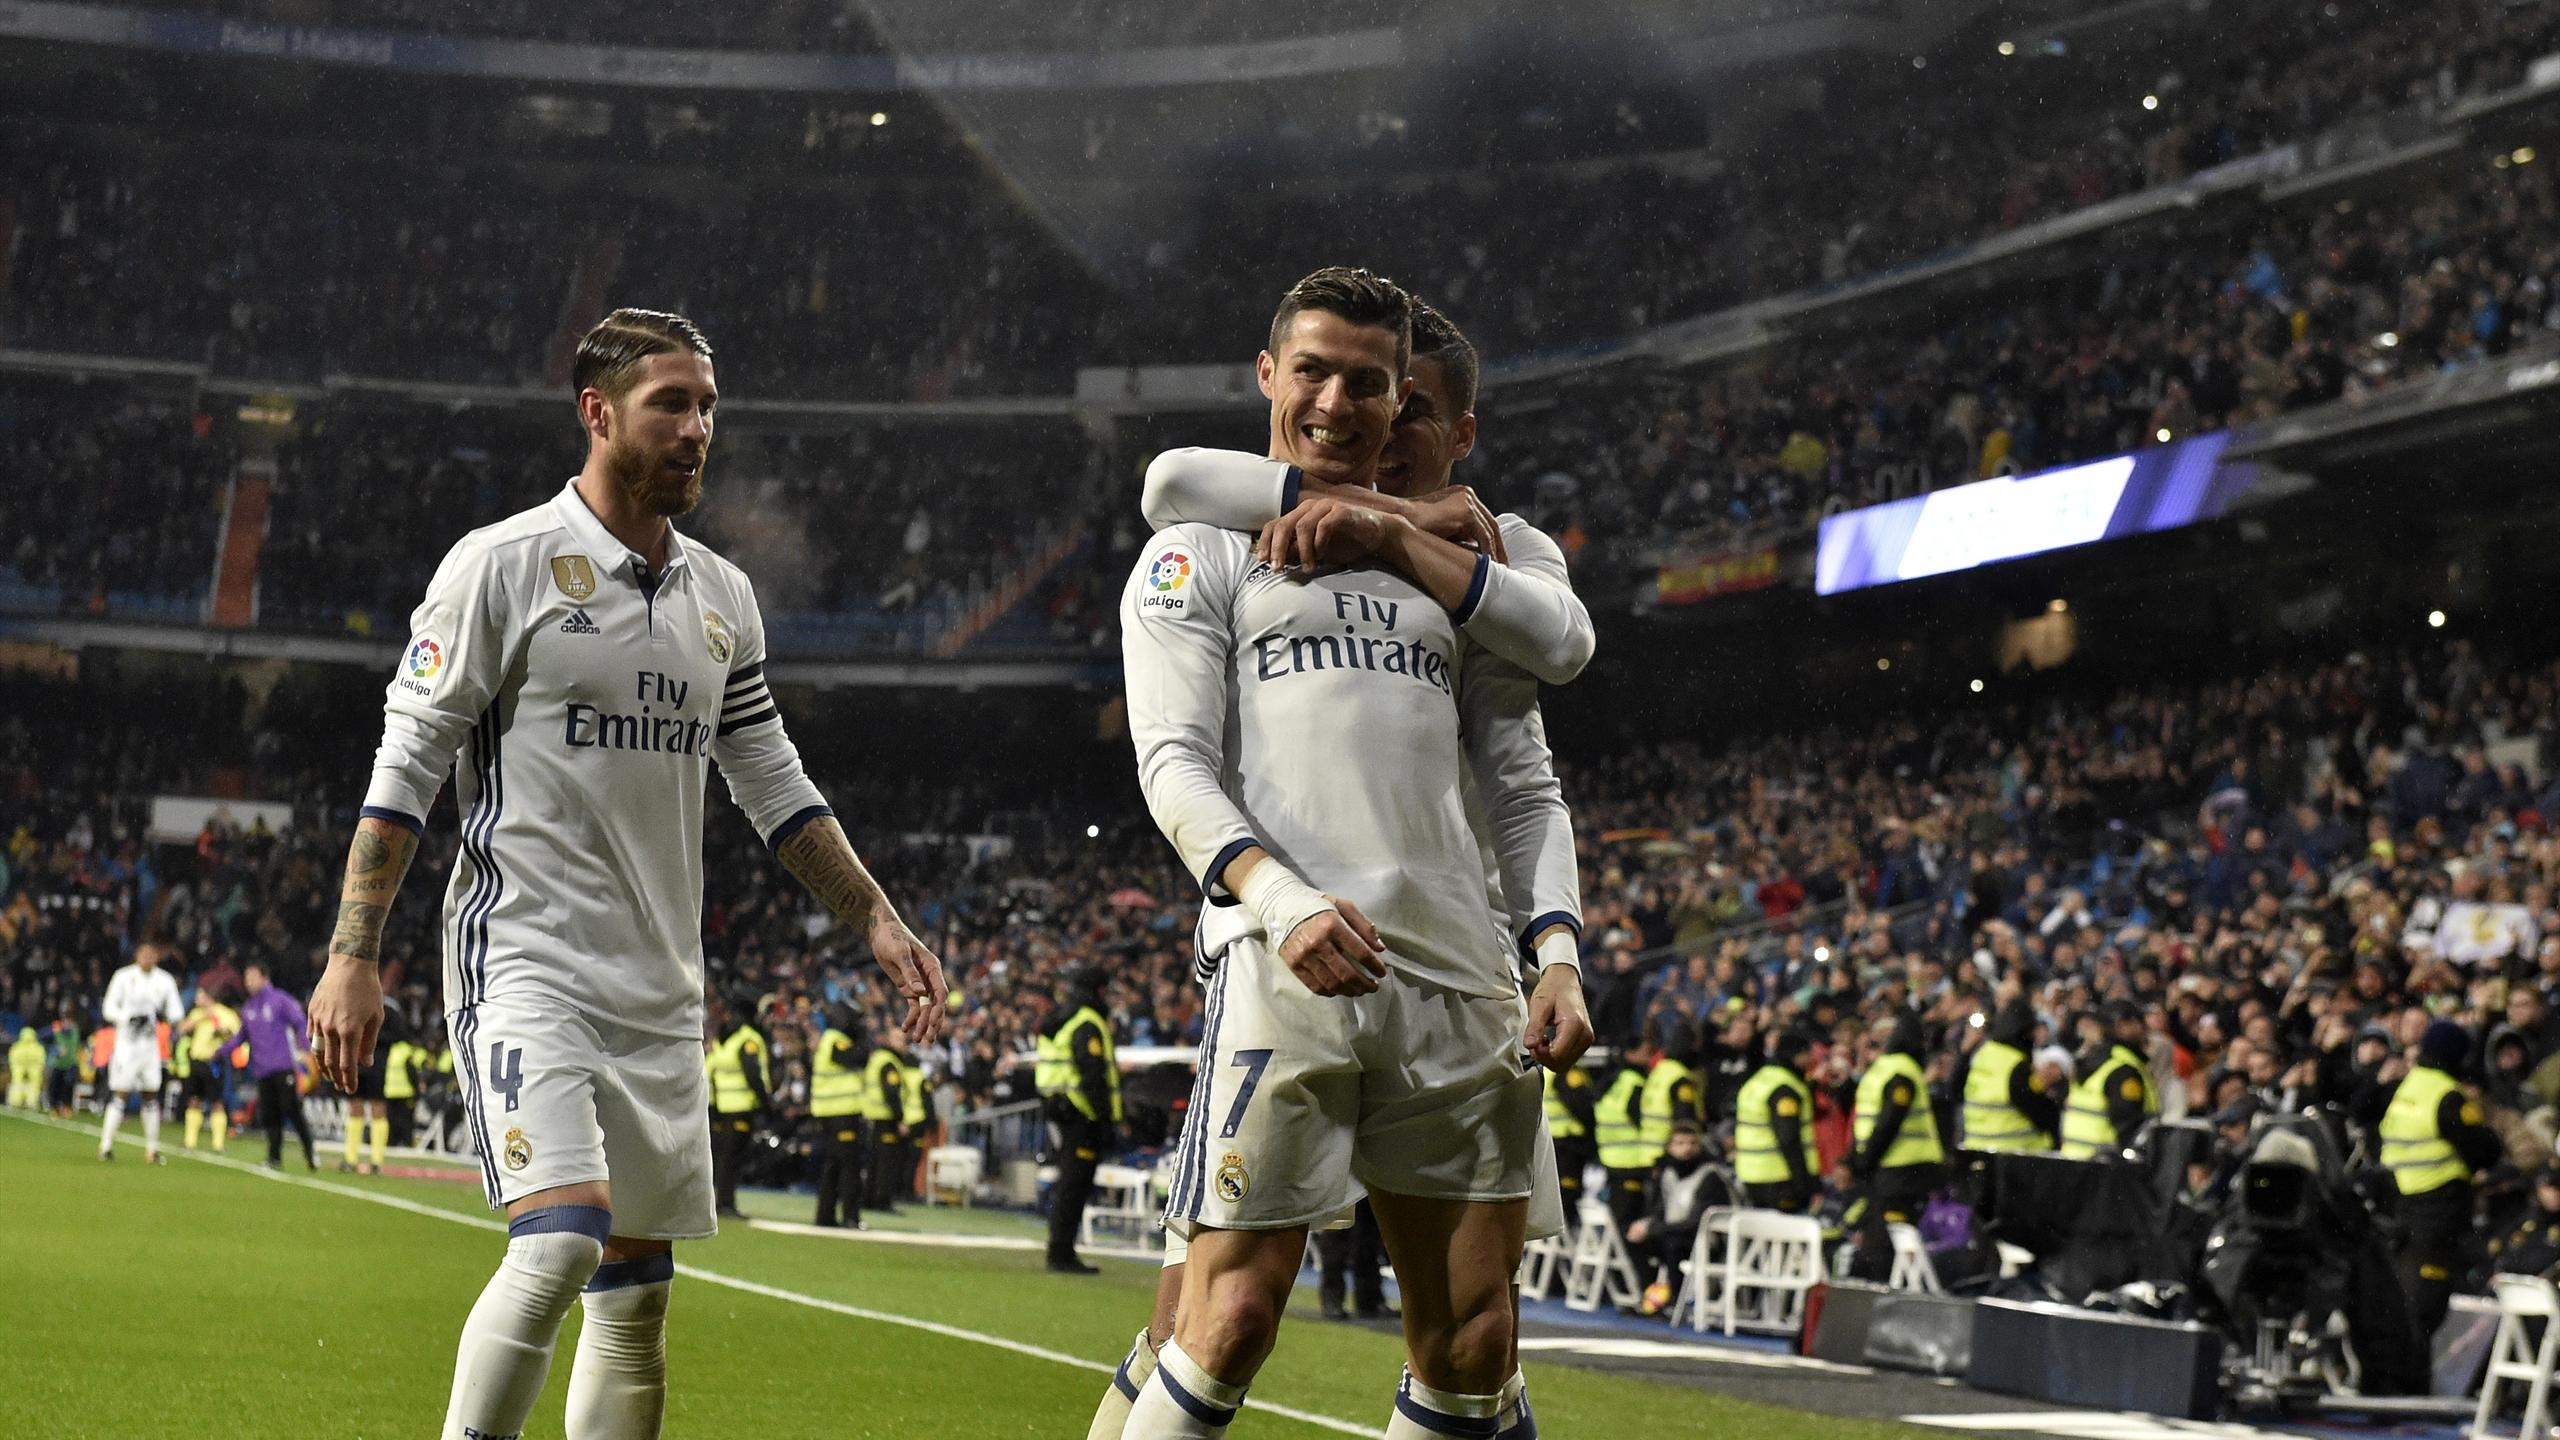 Real Madrid's Portuguese forward Cristiano Ronaldo (C) is congratulated by Real Madrid's defender Sergio Ramos (L) and Real Madrid's Brazilian midfielder Casemiro after scoring a goal during the Spanish league football match Real Madrid CF vs Real Socieda